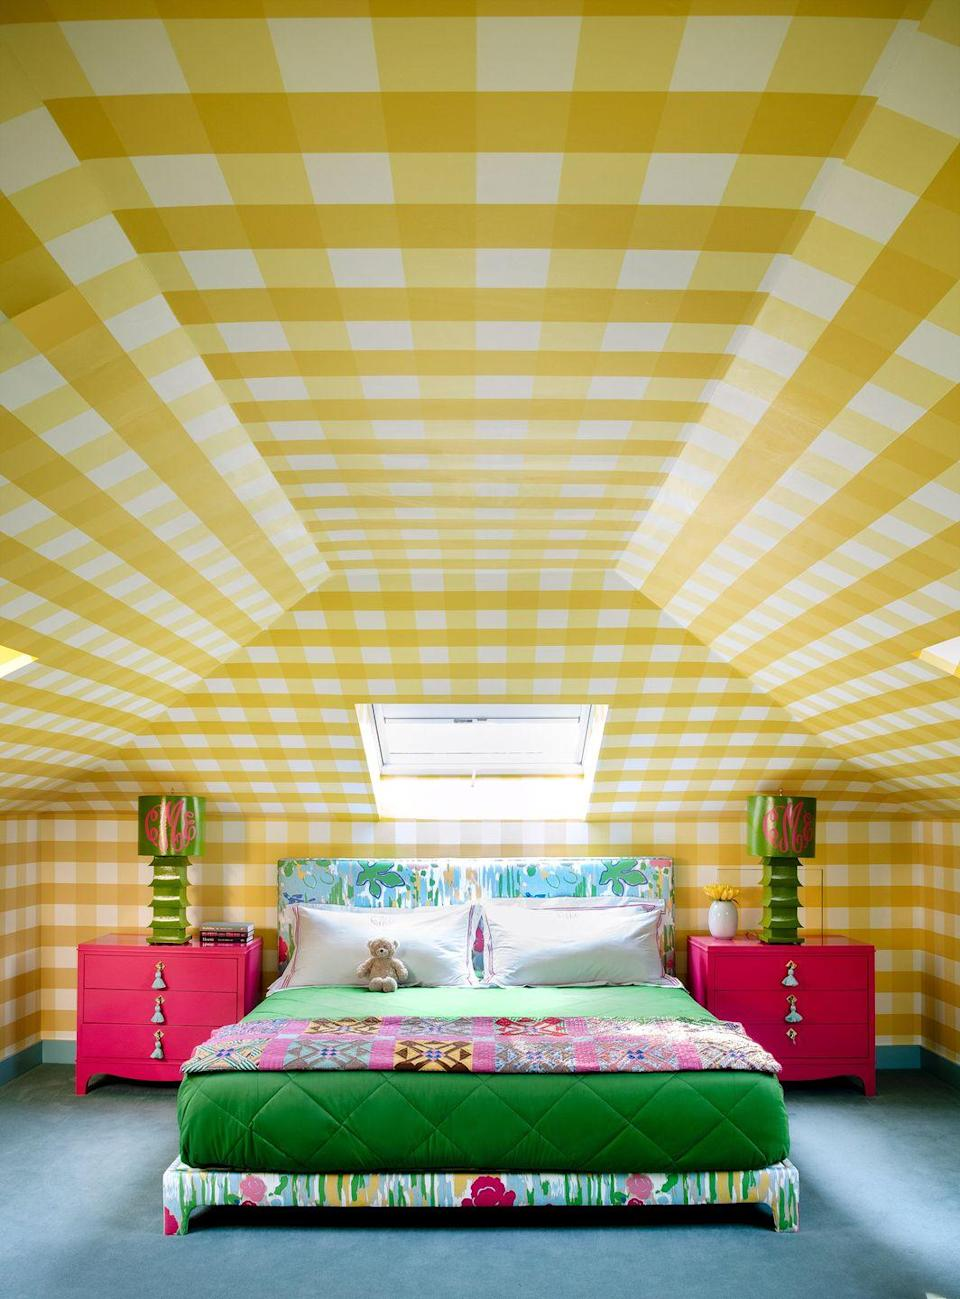 """<p>If a room could be a hug, this is what it would look like. The chipper yellow gingham wallpaper envelopes the entire space designed by <a href=""""https://www.housebeautiful.com/design-inspiration/house-tours/a27359533/bunny-hop-cottage-shazalynn-cavin-winfrey-design/"""" rel=""""nofollow noopener"""" target=""""_blank"""" data-ylk=""""slk:Shazalynn Cavin-Winfrey"""" class=""""link rapid-noclick-resp"""">Shazalynn Cavin-Winfrey</a>, unifying the many angles and corners. The architectural quirks, along with the punchy colors and fun fabrics, make it feel like a clubhouse.</p>"""